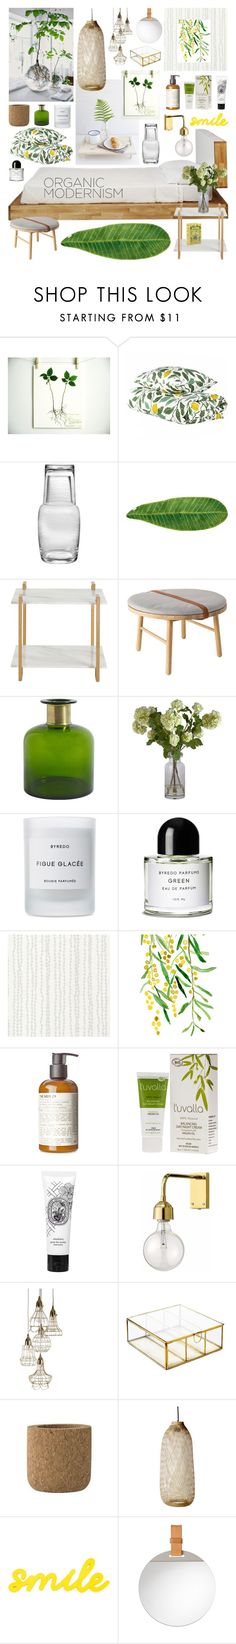 """""""Organic Modernism"""" by ladomna ❤ liked on Polyvore featuring interior, interiors, interior design, home, home decor, interior decorating, Qualia, Abyss & Habidecor, Arteriors and Bloomingville"""